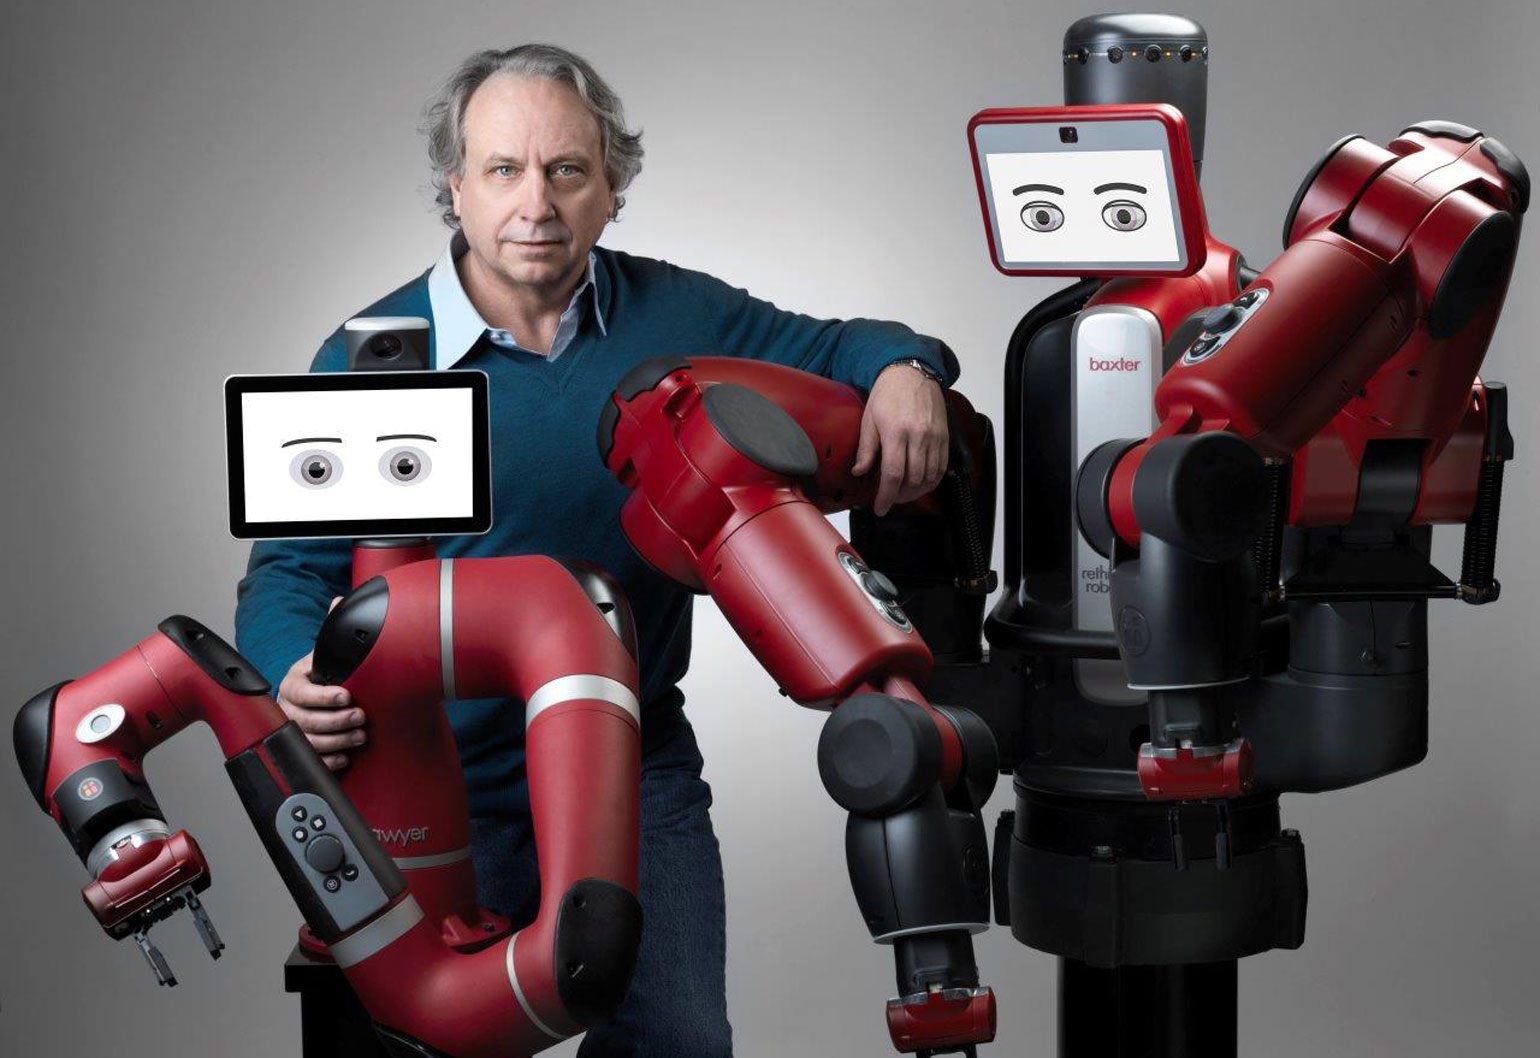 Collaborative robots Baxter and Sawyer